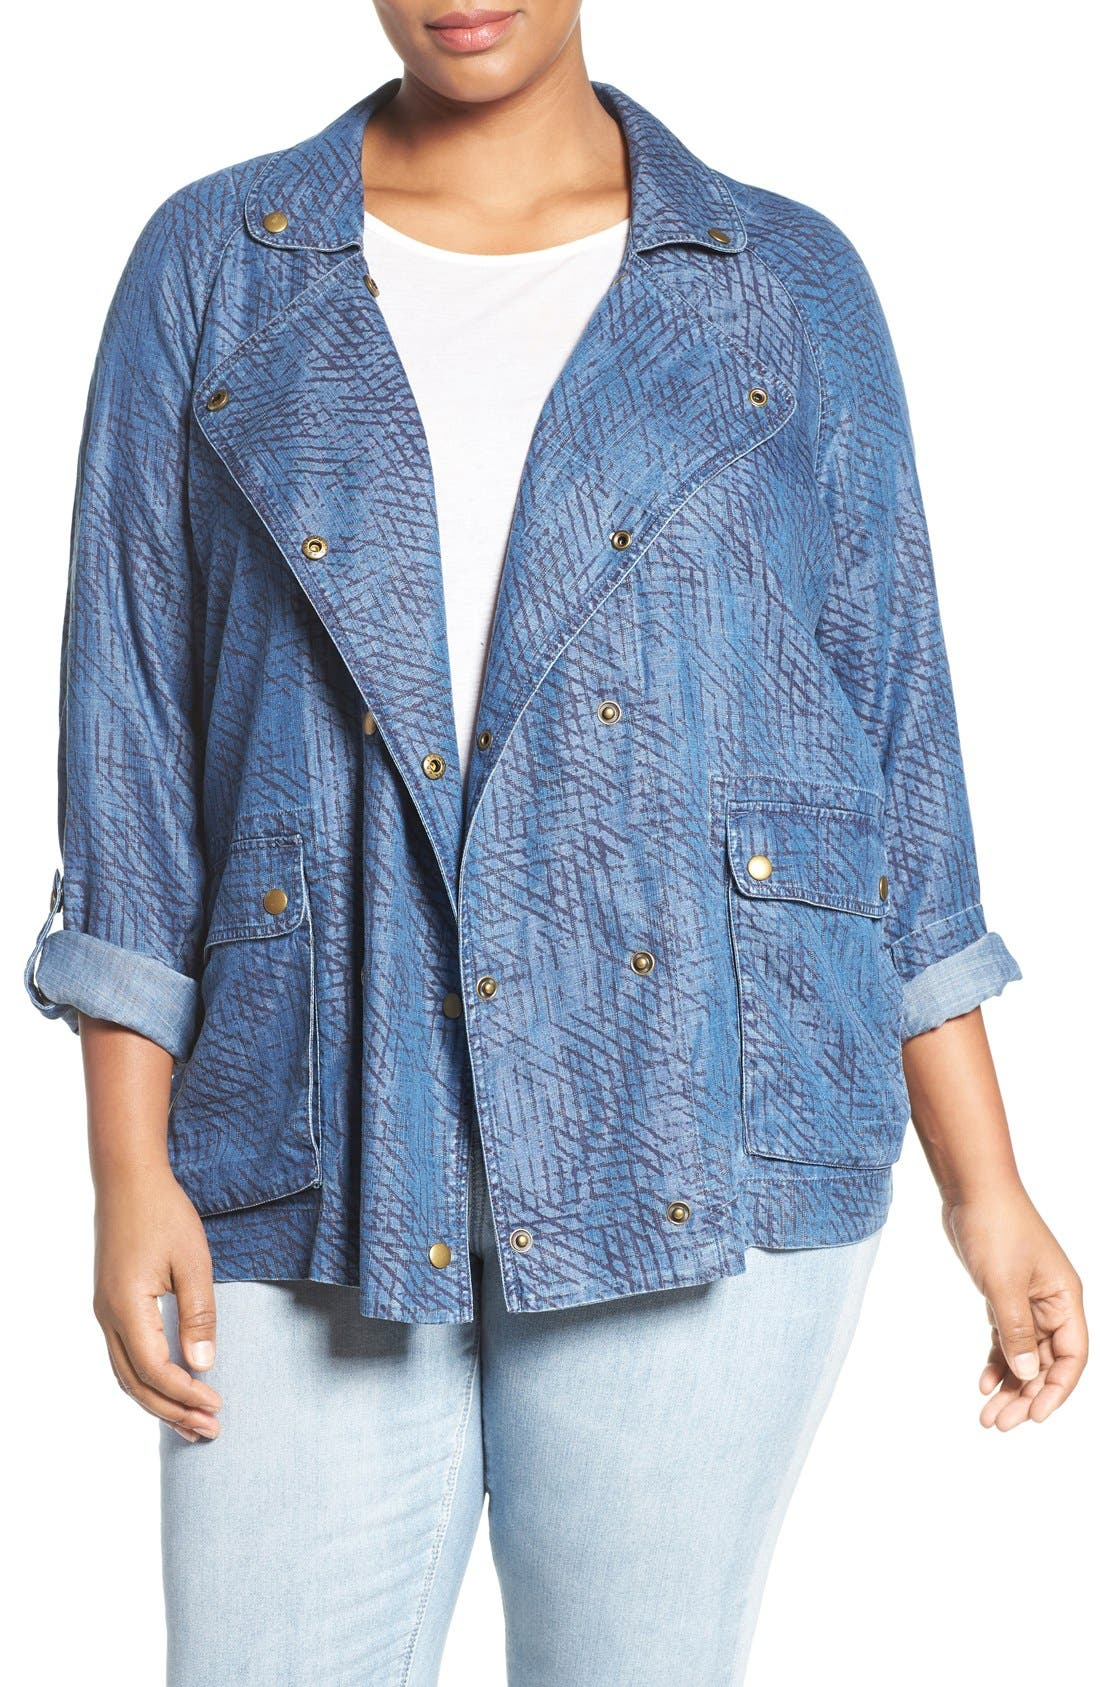 Tart 'SYDEN' DOUBLE BREASTED CHAMBRAY JACKET